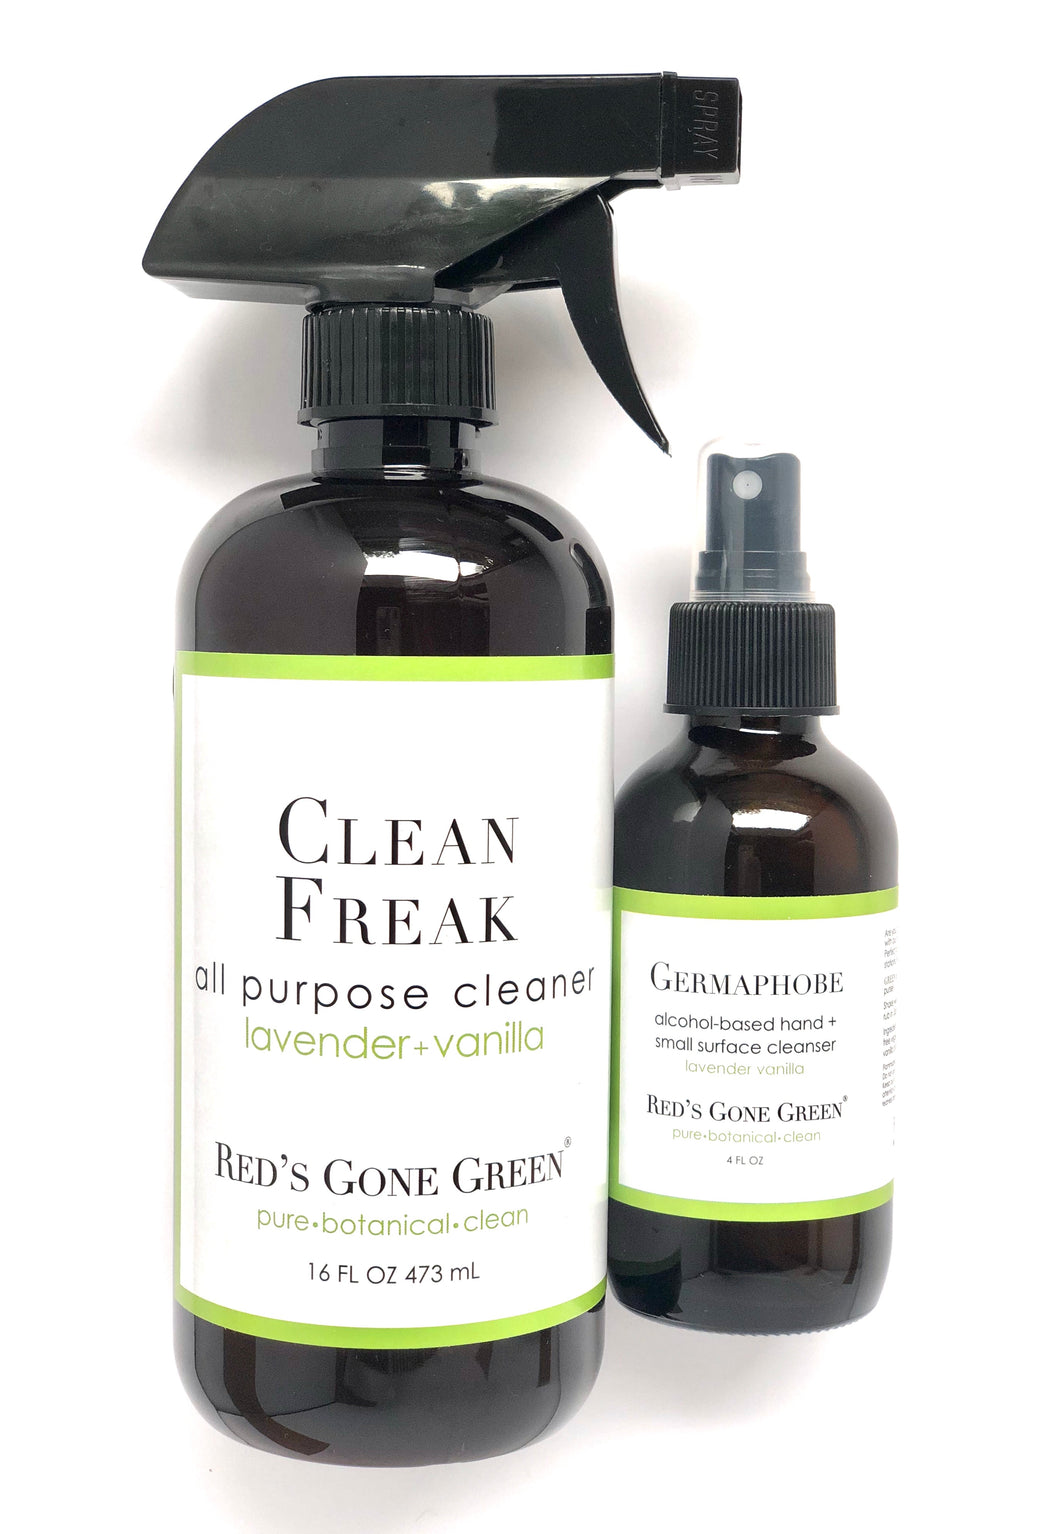 Lavender Vanilla Hand Cleanser & All Purpose Cleaner Set